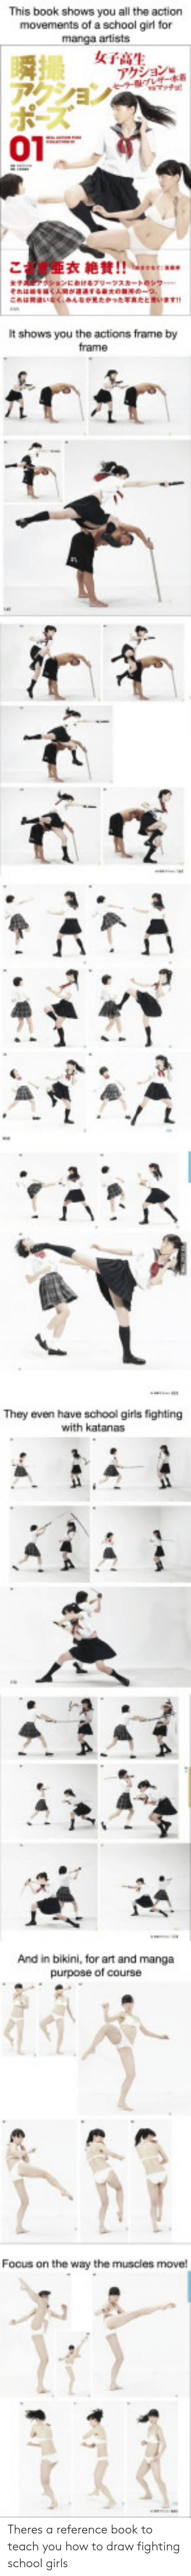 "School: This book shows you all the action  movements of a school girl for  manga artists  01  衣絶賛!!"""","",  It shows you the actions frame by  They even have school girls fighting  with katanas  And in bikini, for art and manga  purpose of course  Focus on the way the muscles move Theres a reference book to teach you how to draw fighting school girls"